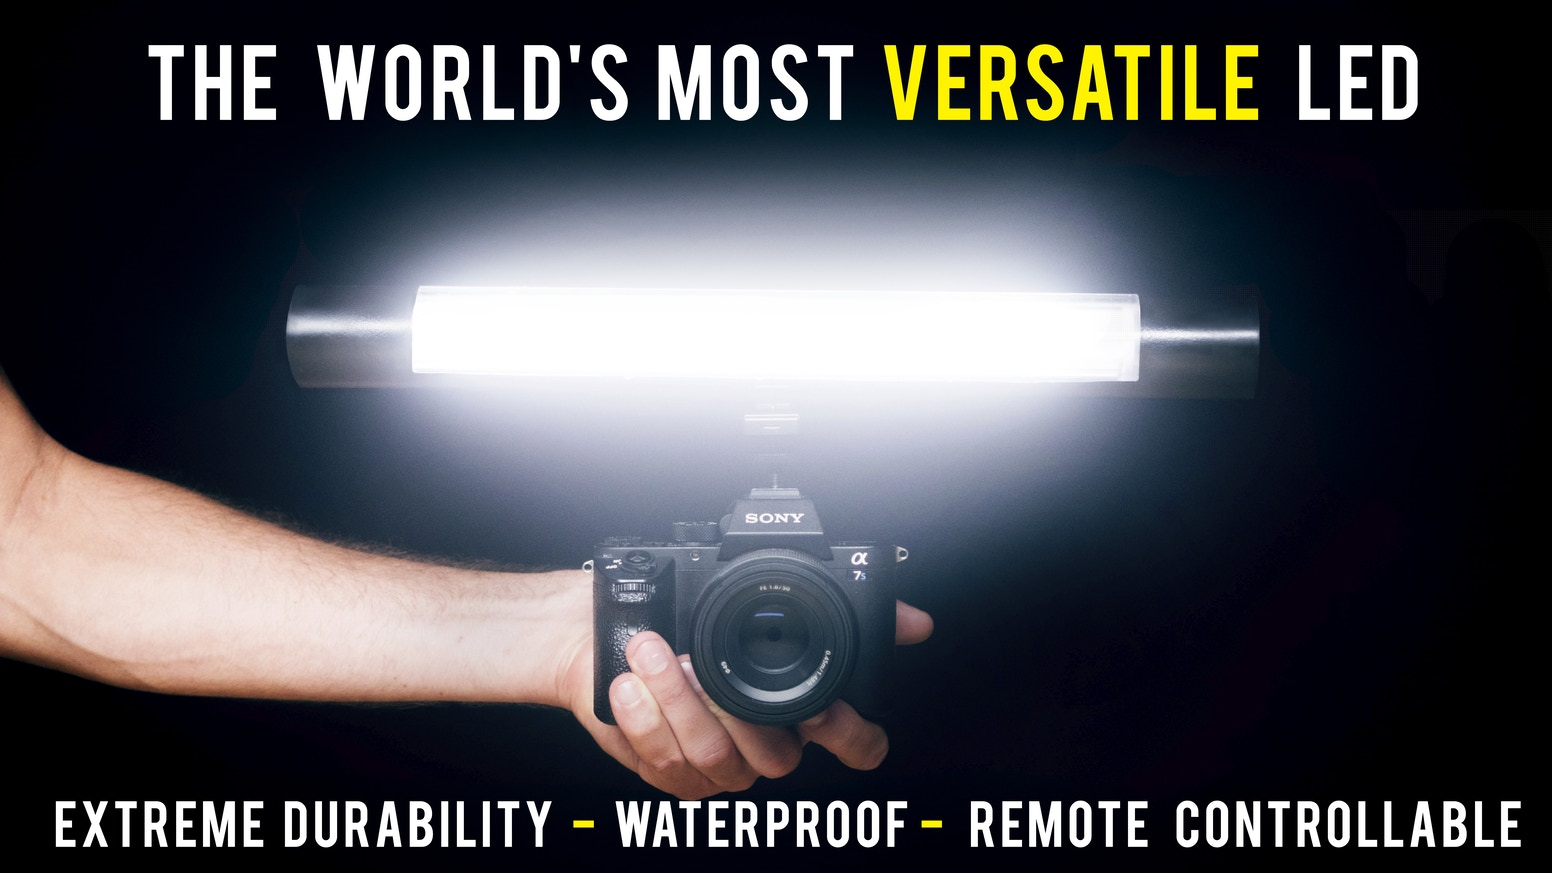 Lumin8 is revolutionizing how and where beautifully lit media can be captured one light at a time.